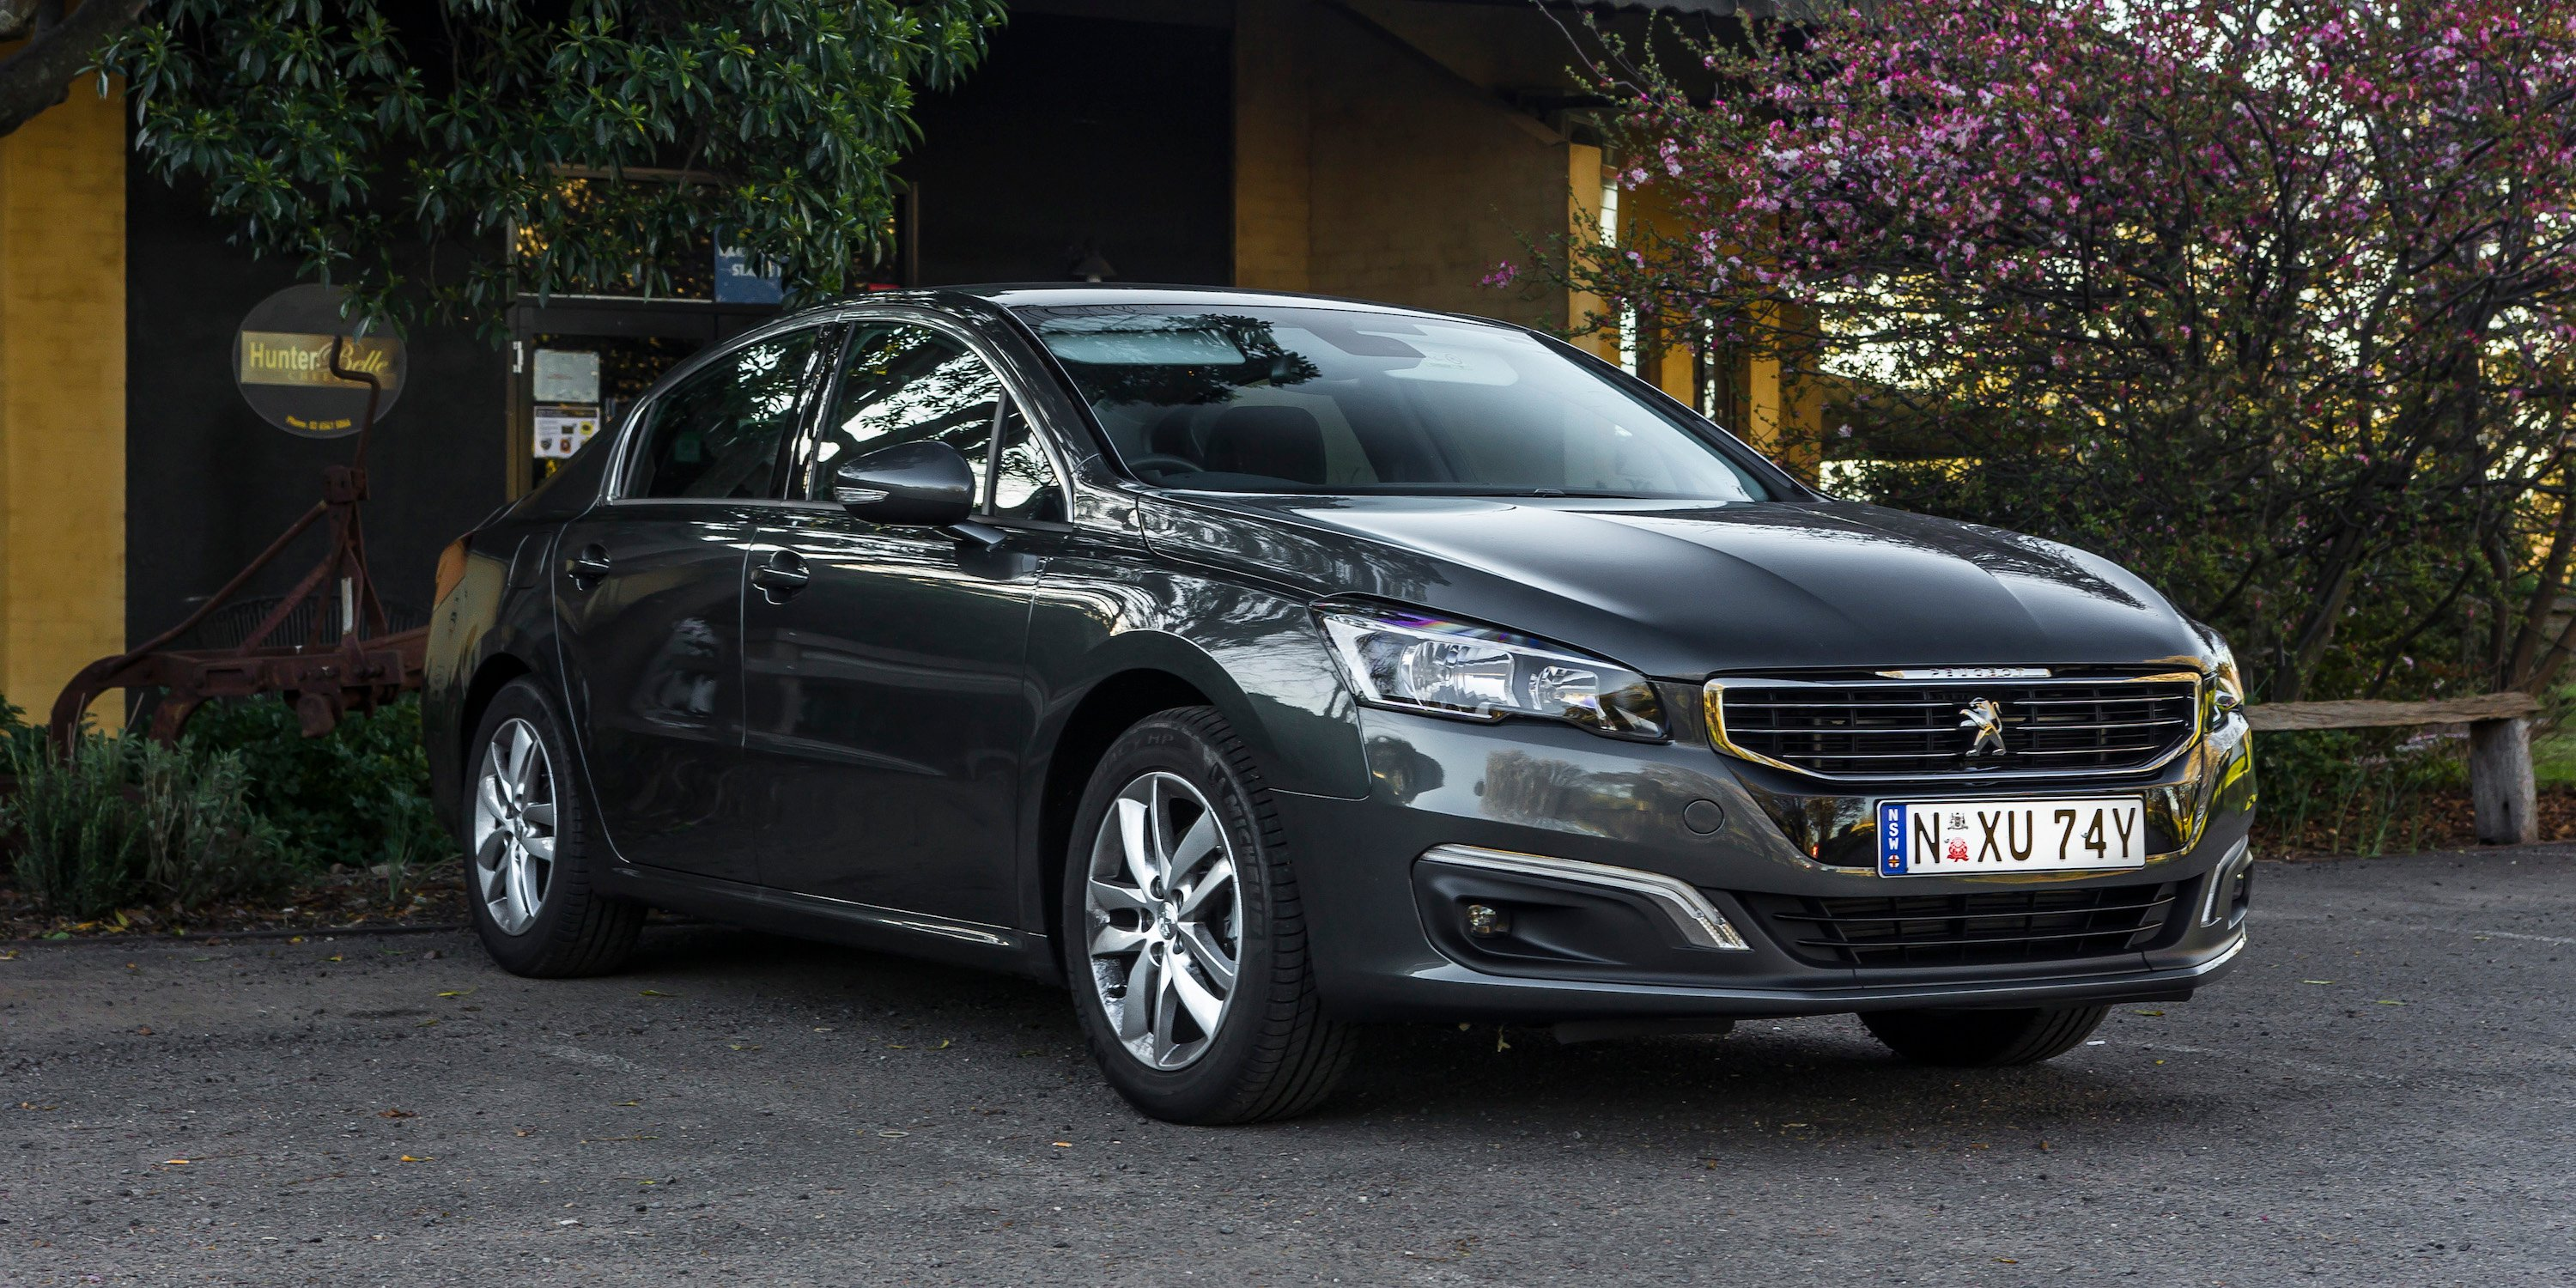 2015 peugeot 508 active review long term report three photos caradvice. Black Bedroom Furniture Sets. Home Design Ideas